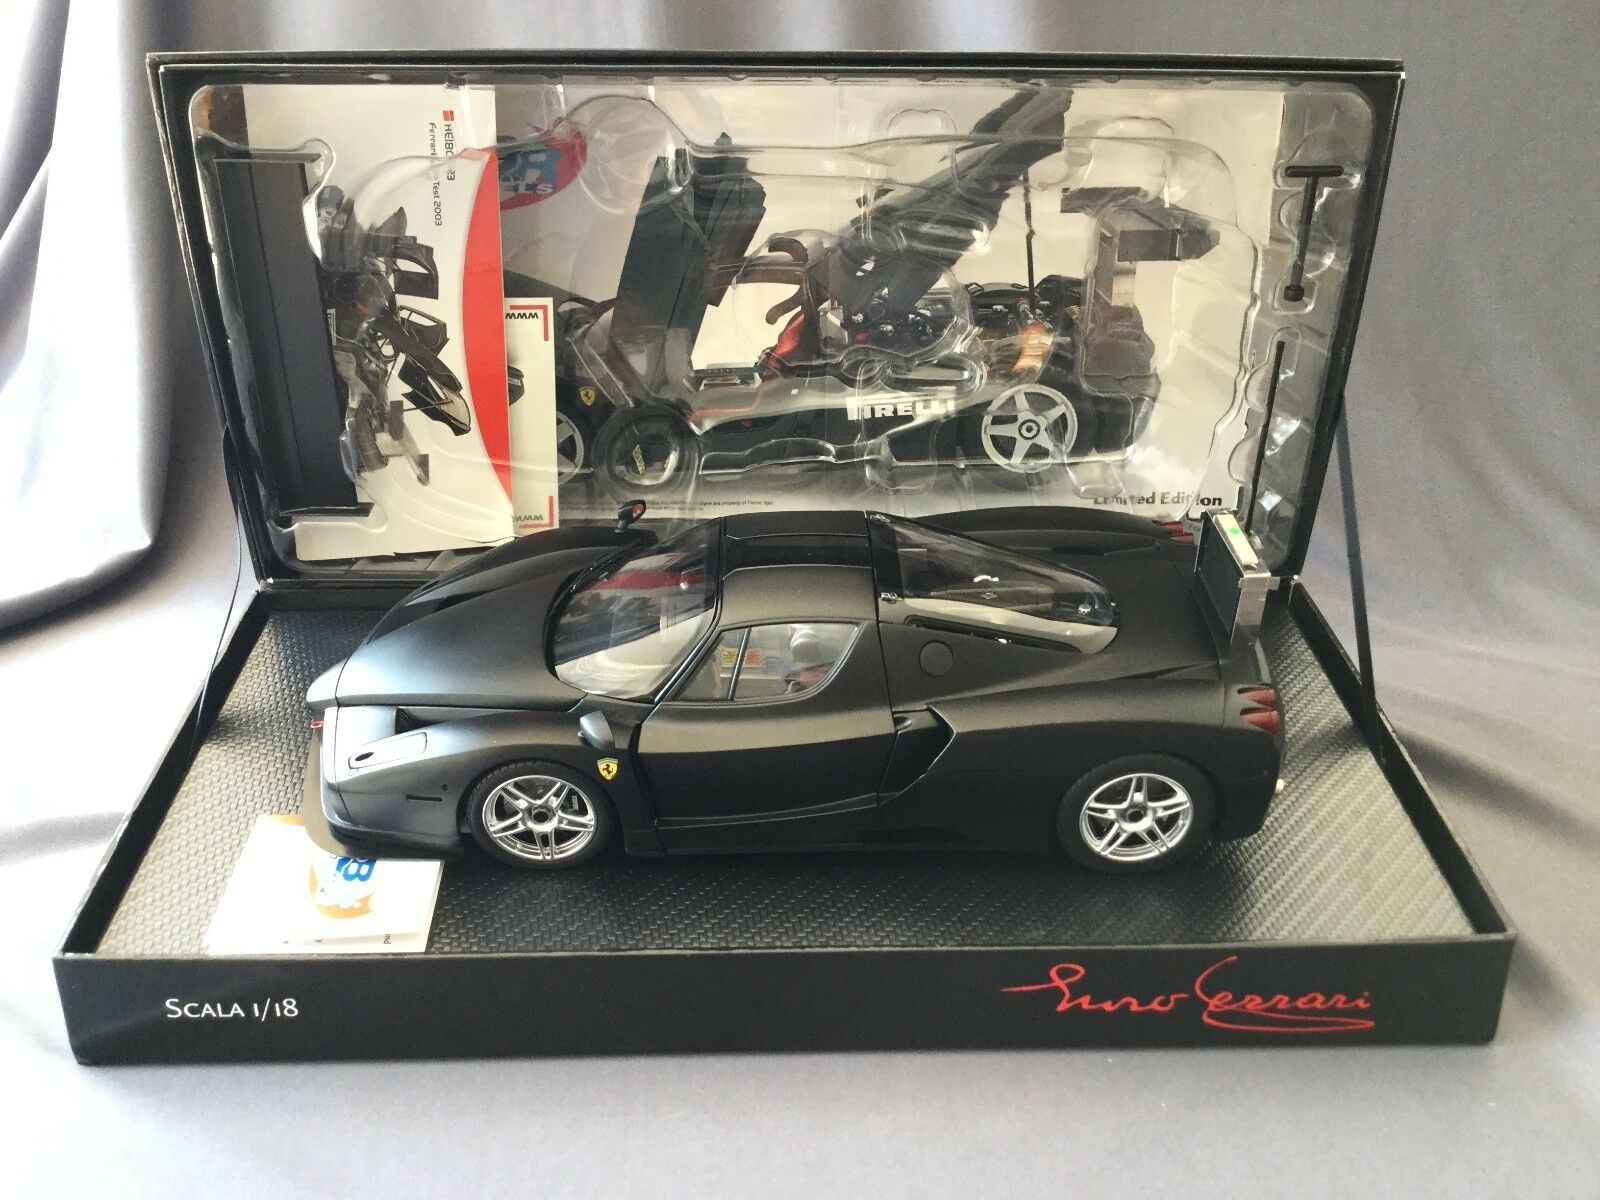 FERRARI ENZO TEST MONZA Special LIMITED Edition 211 items - 1:18 BBR Models